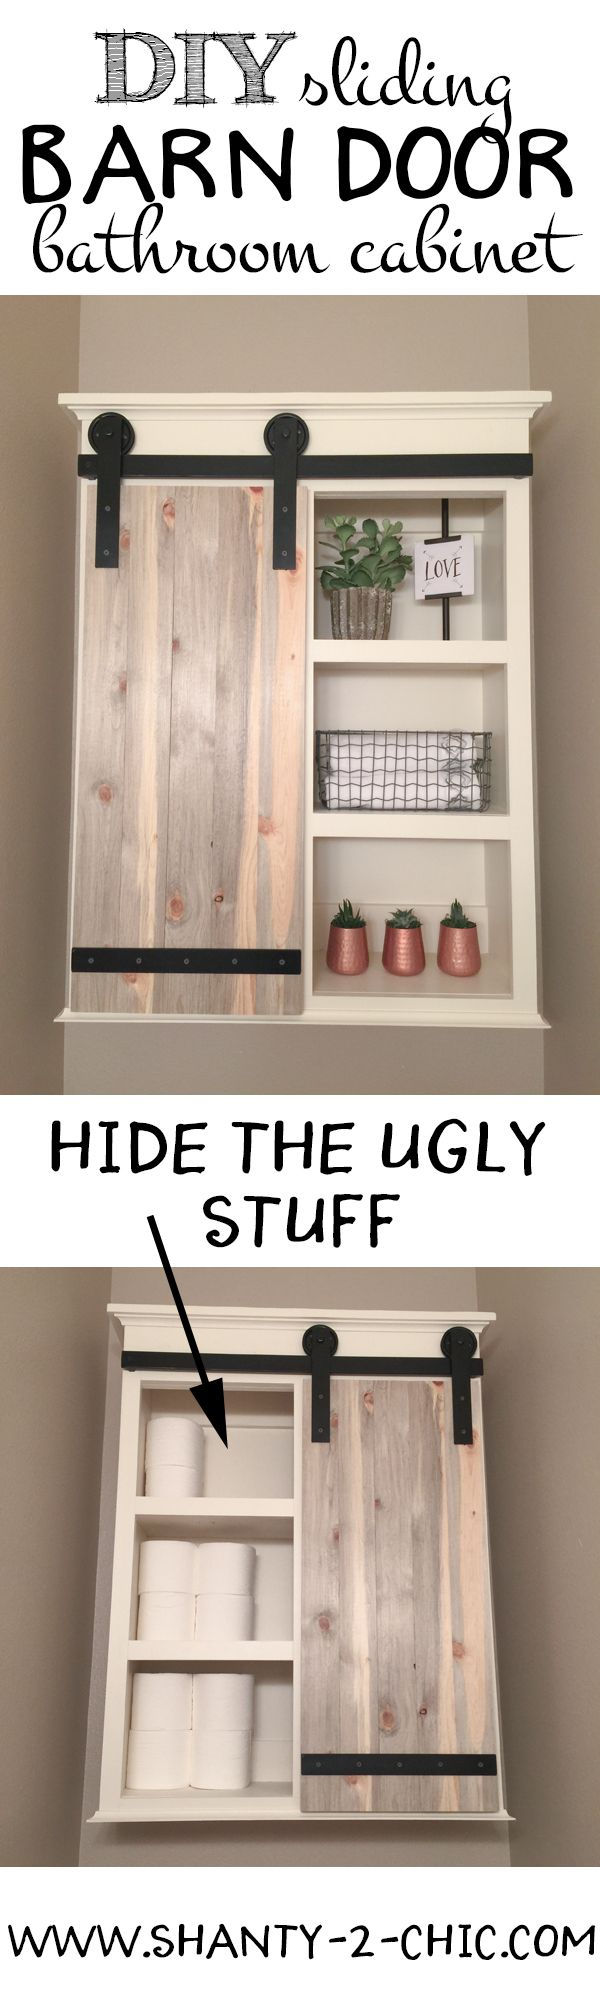 25+ best bathroom storage ideas on pinterest | bathroom storage